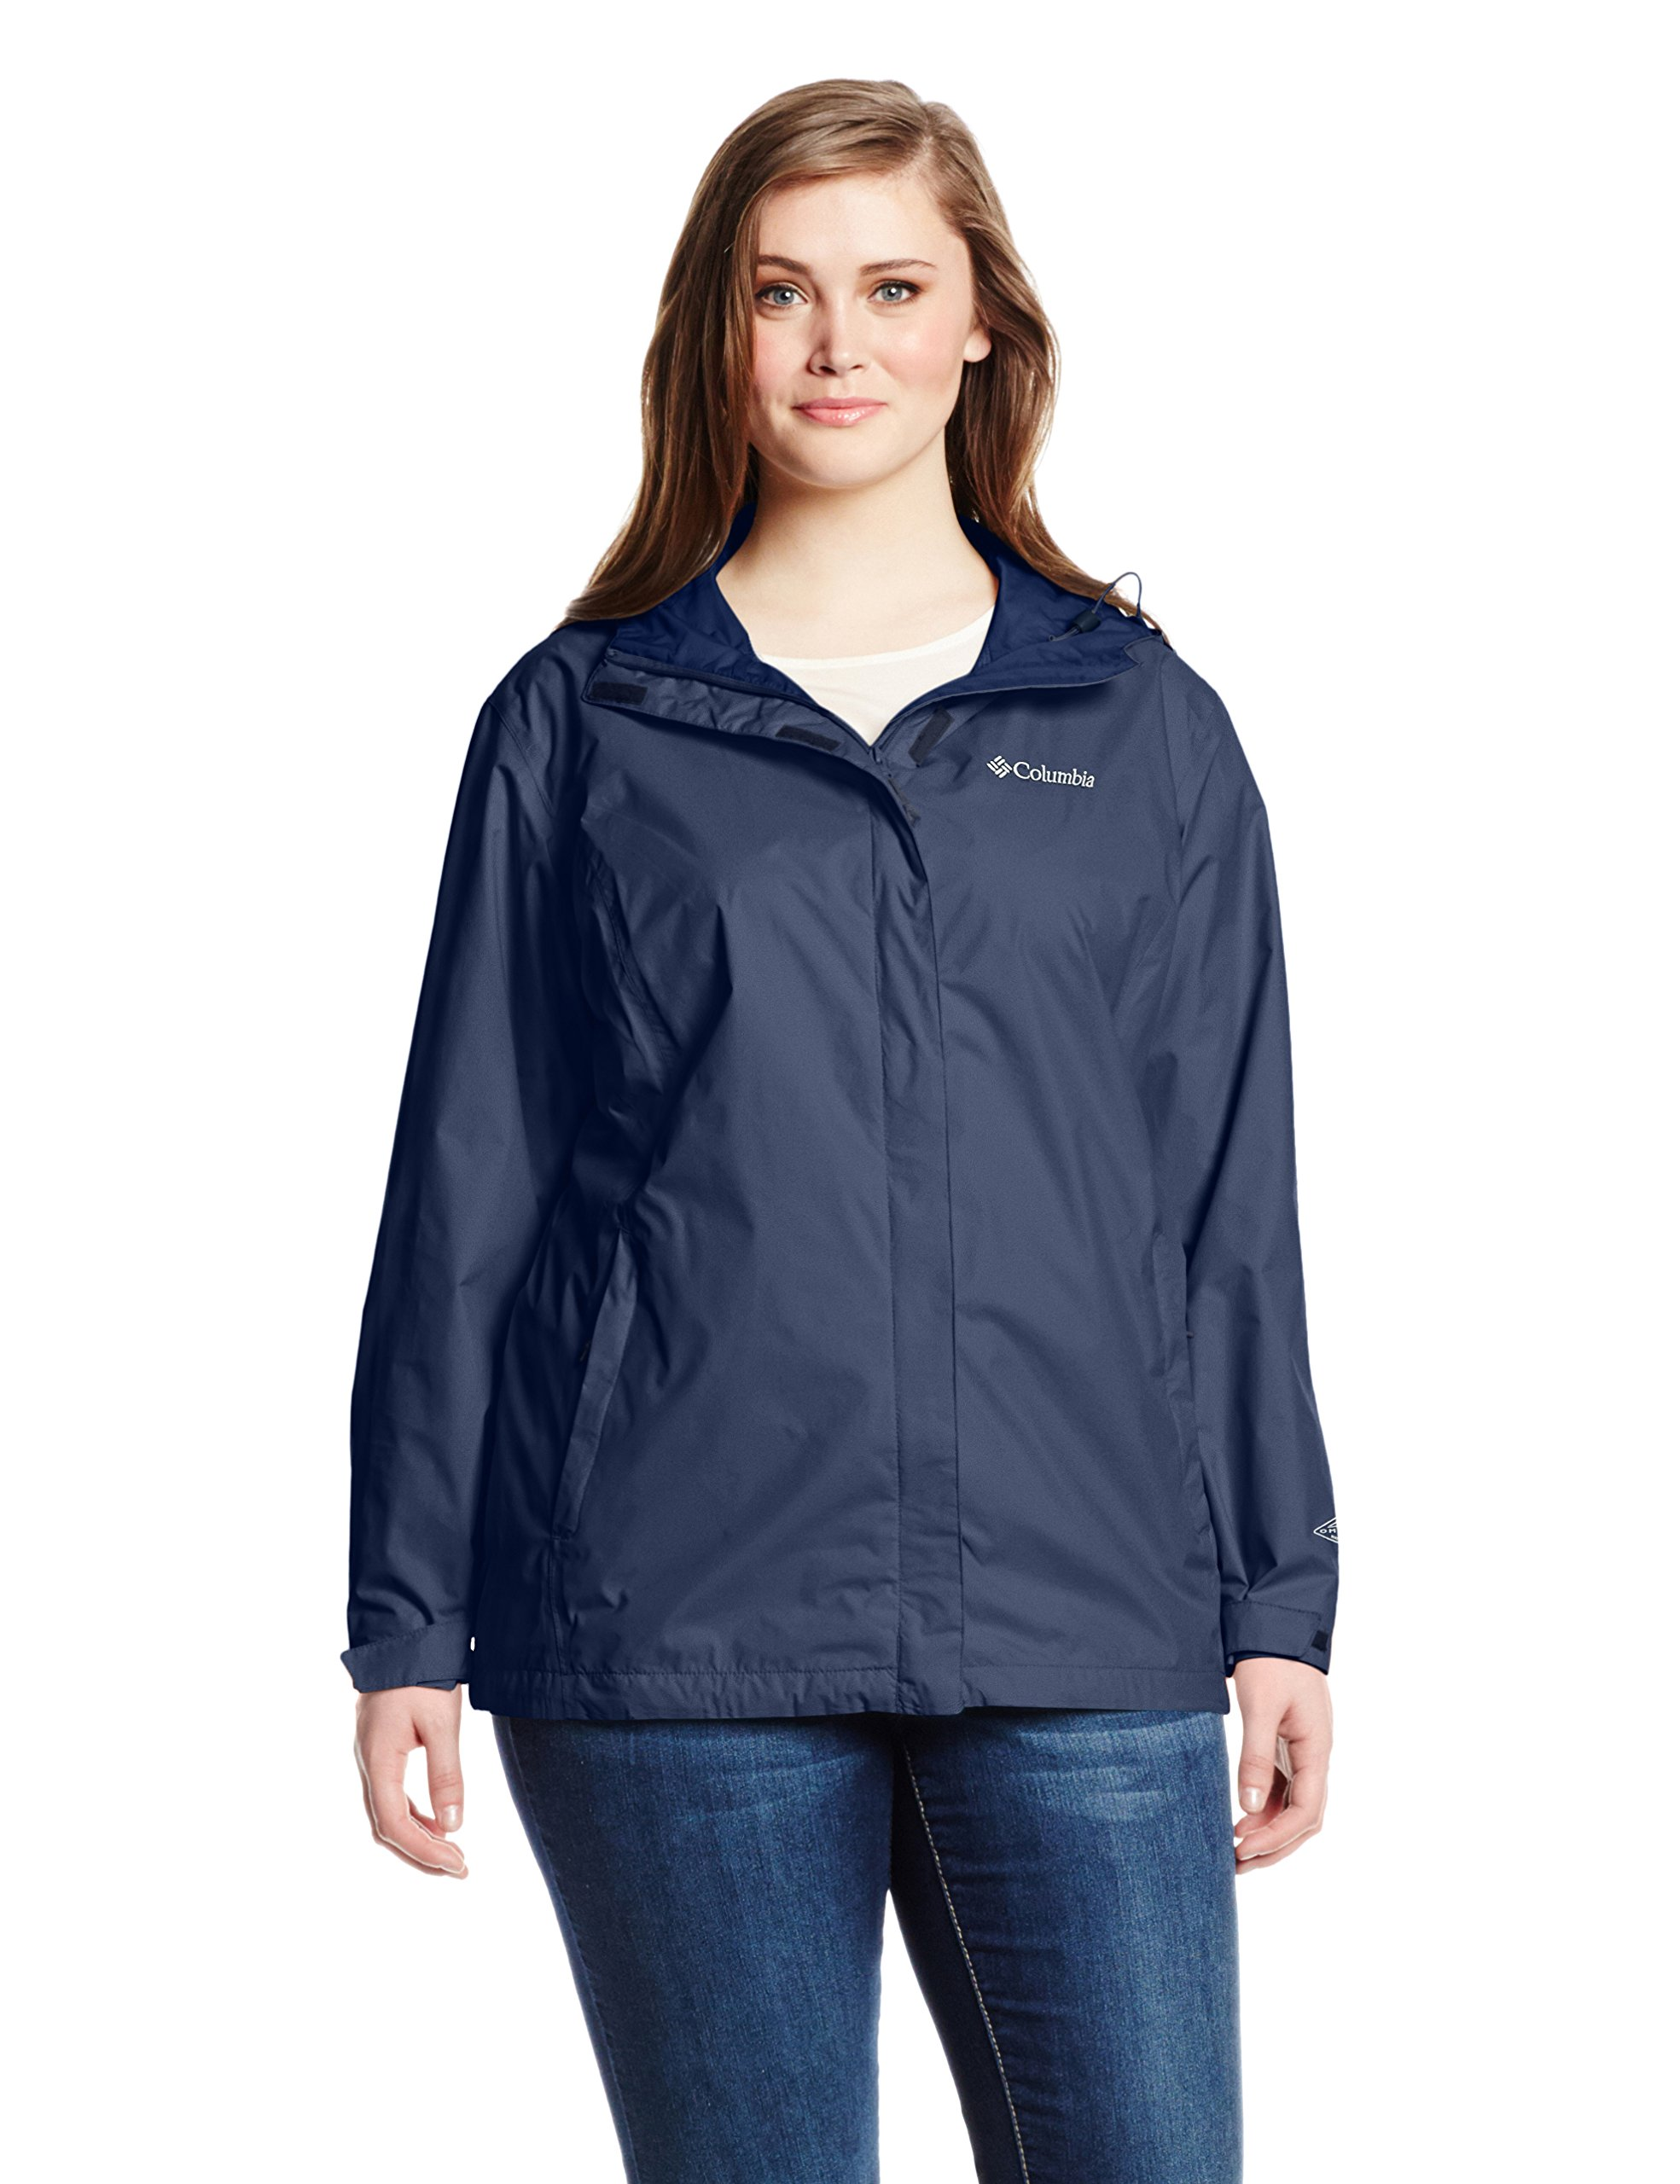 Columbia Women's Plus-Size Arcadia Ii Plus Size Jacket Outerwear, Navy, 3X